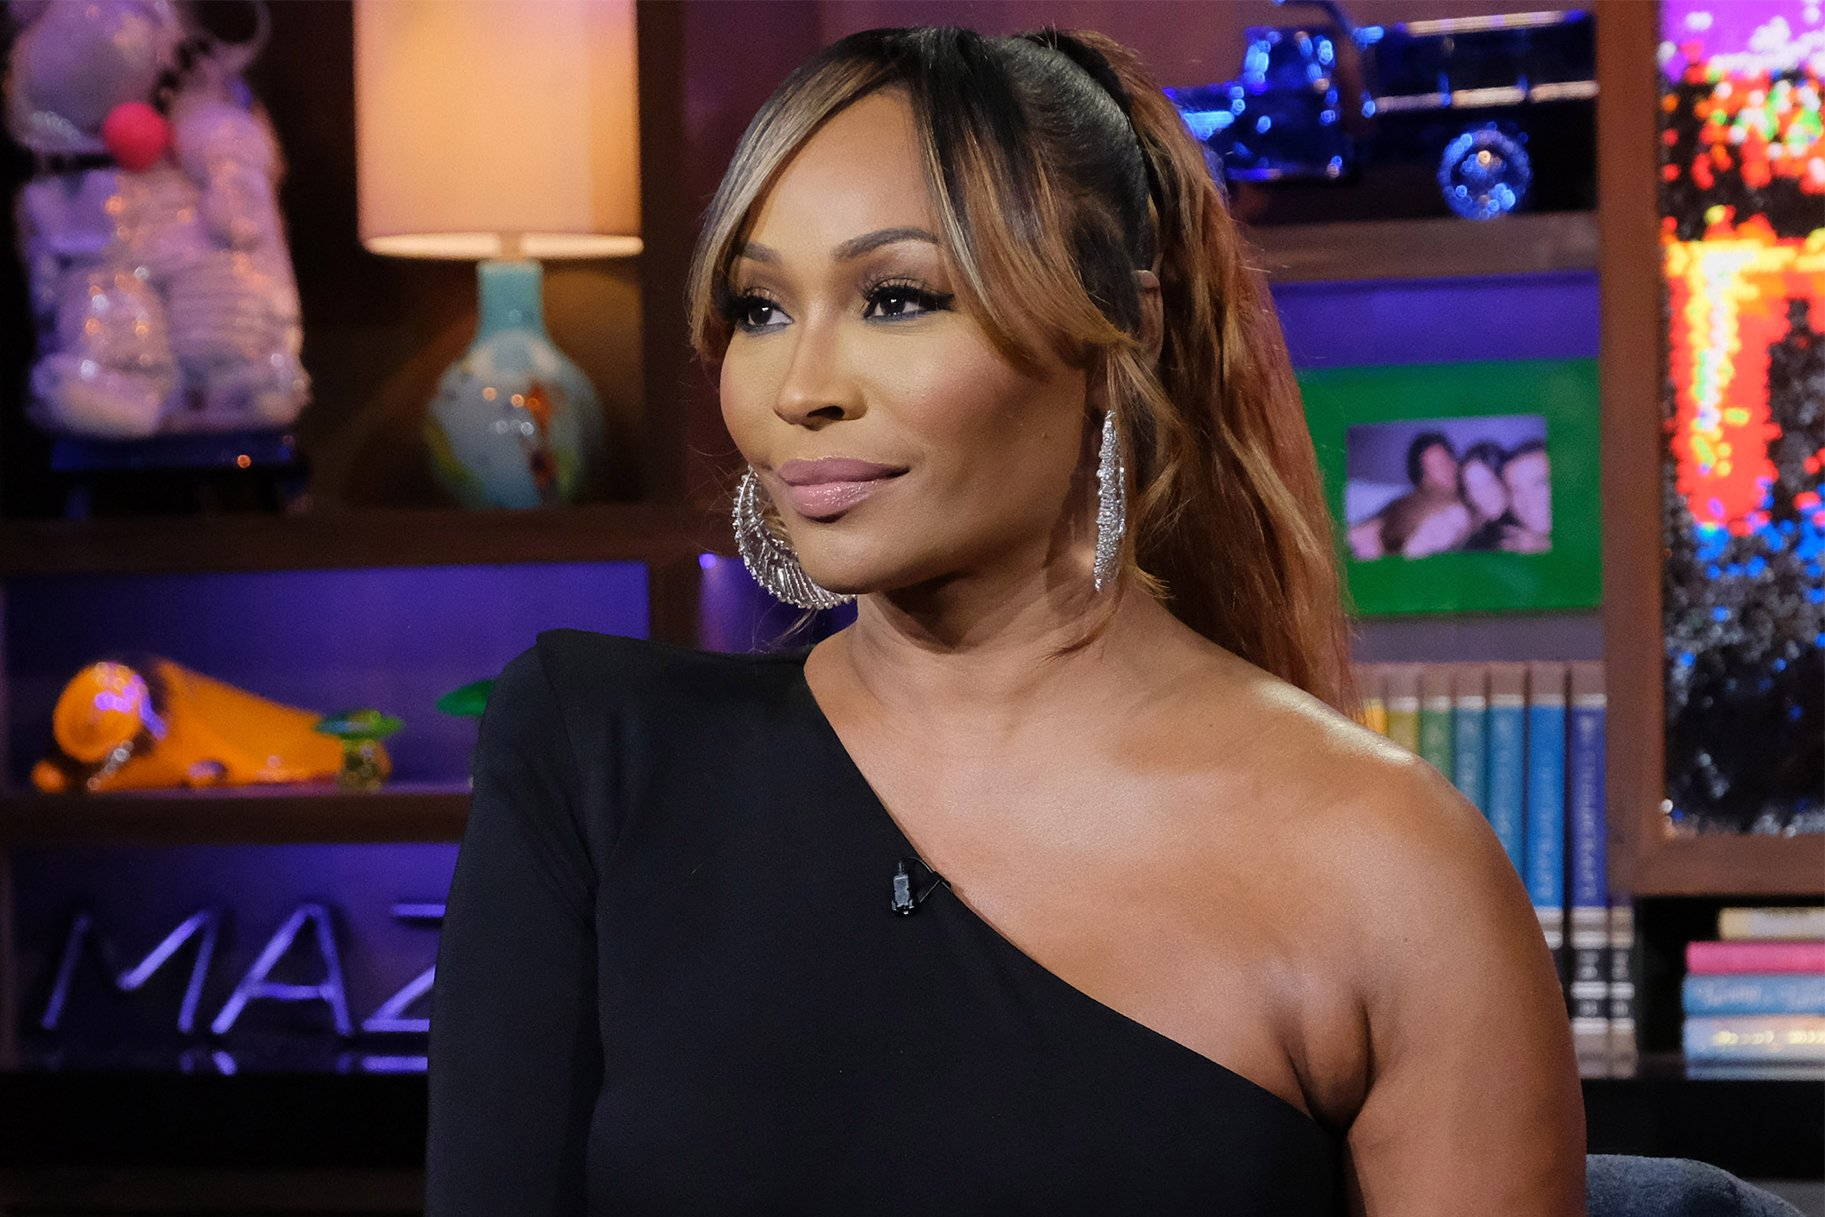 Some Of Cynthia Bailey's Fans Warn Her About Mike Hill – See What They Have To Say